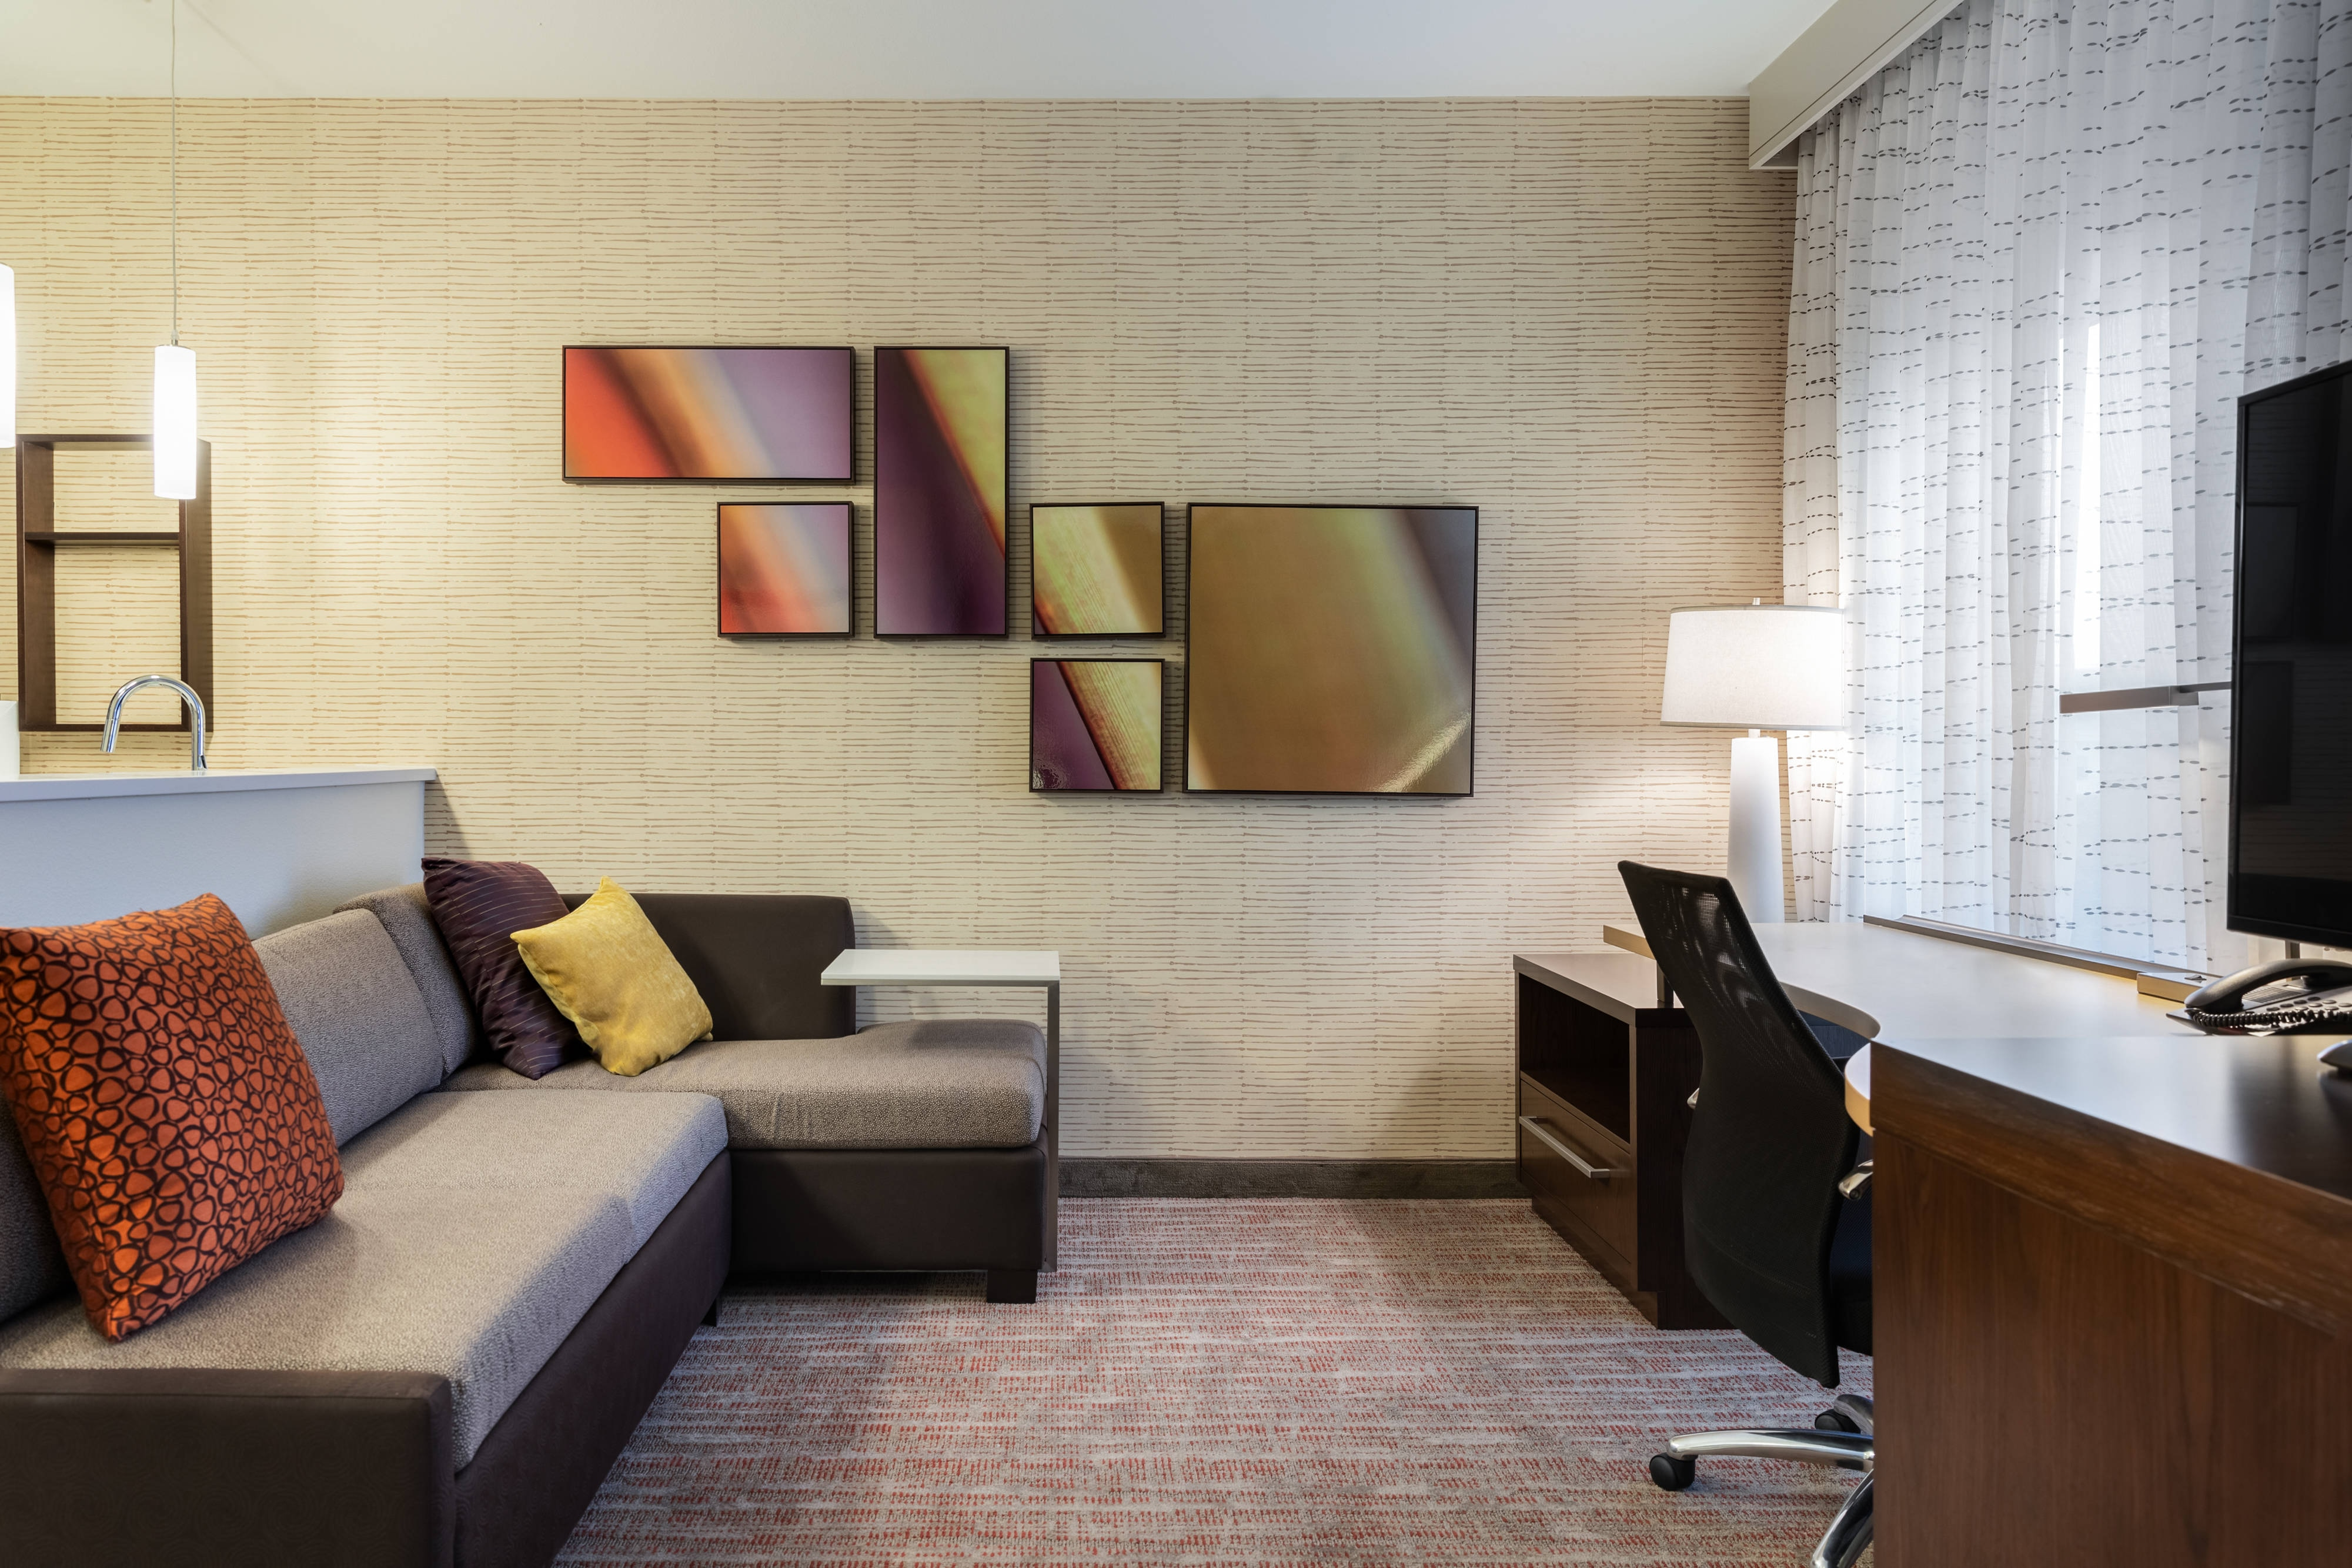 Ease Into Extended Stays At Our Plano Hotel